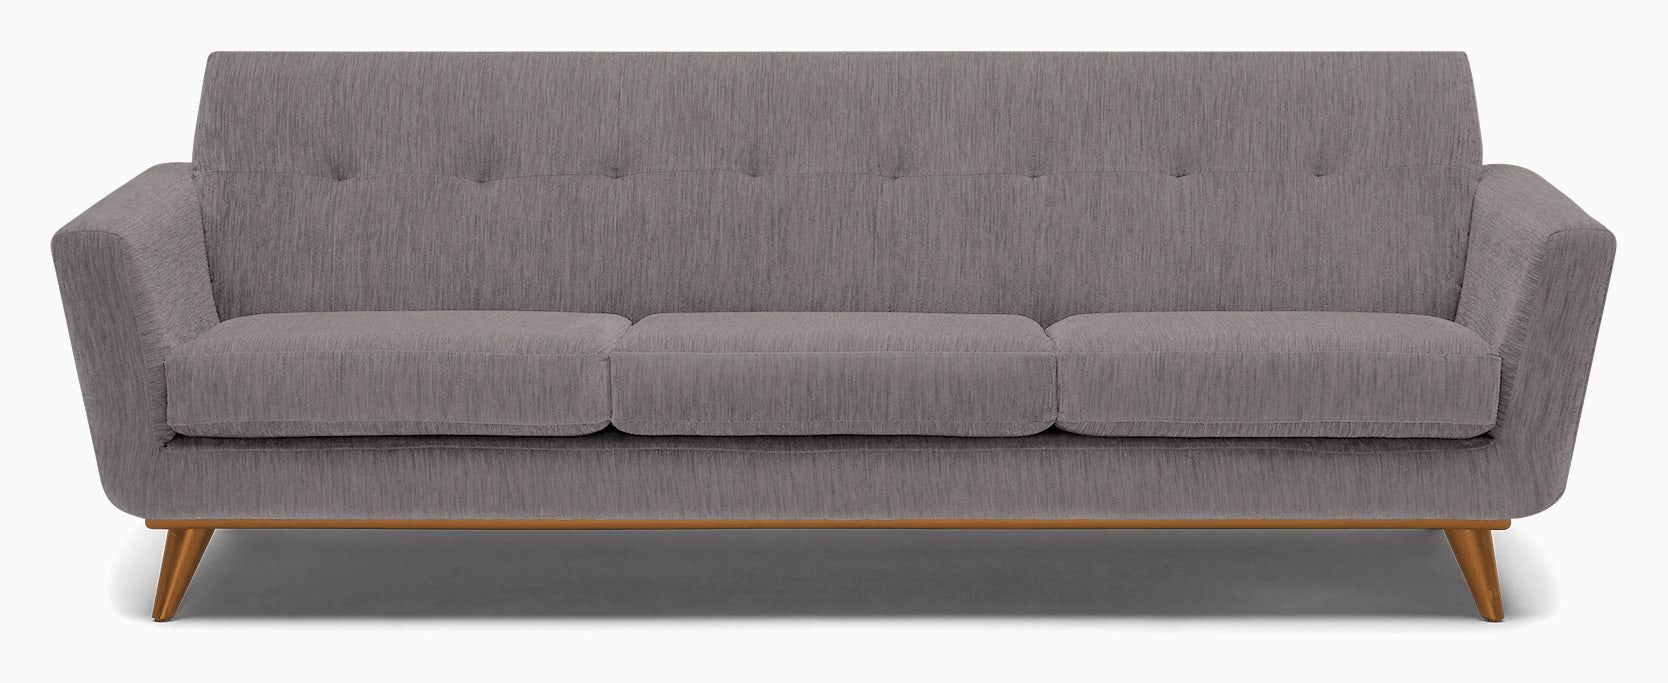 hughes grand sofa taylor felt grey